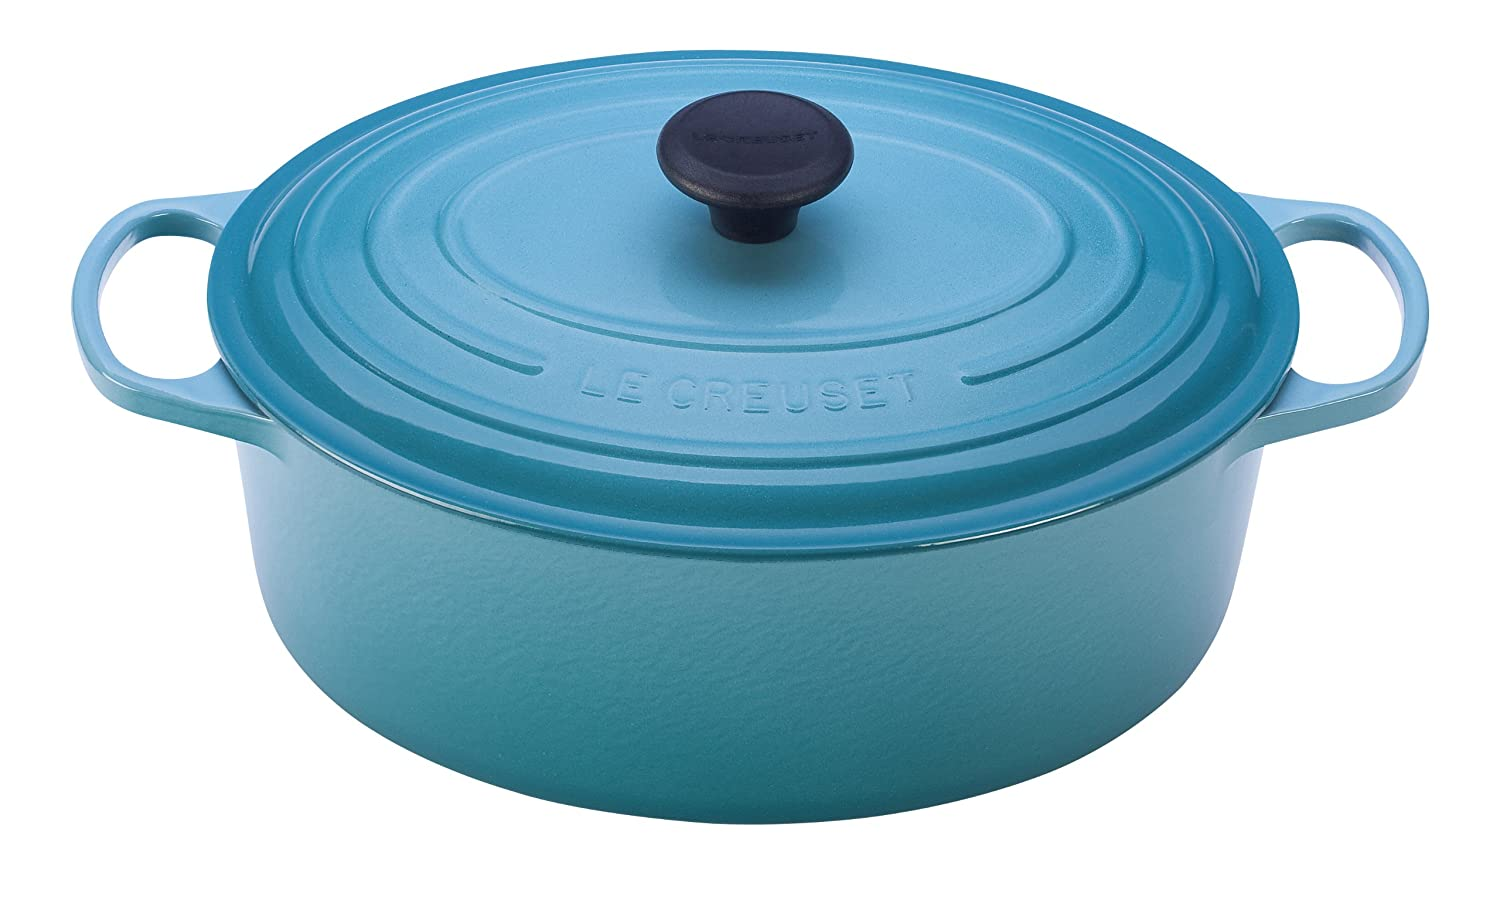 Le Creuset Signature Enameled Cast-Iron 6.75 Quart Oval French (Dutch) Oven, Caribbean by Le Creuset B0076NONSE カリビアン カリビアン